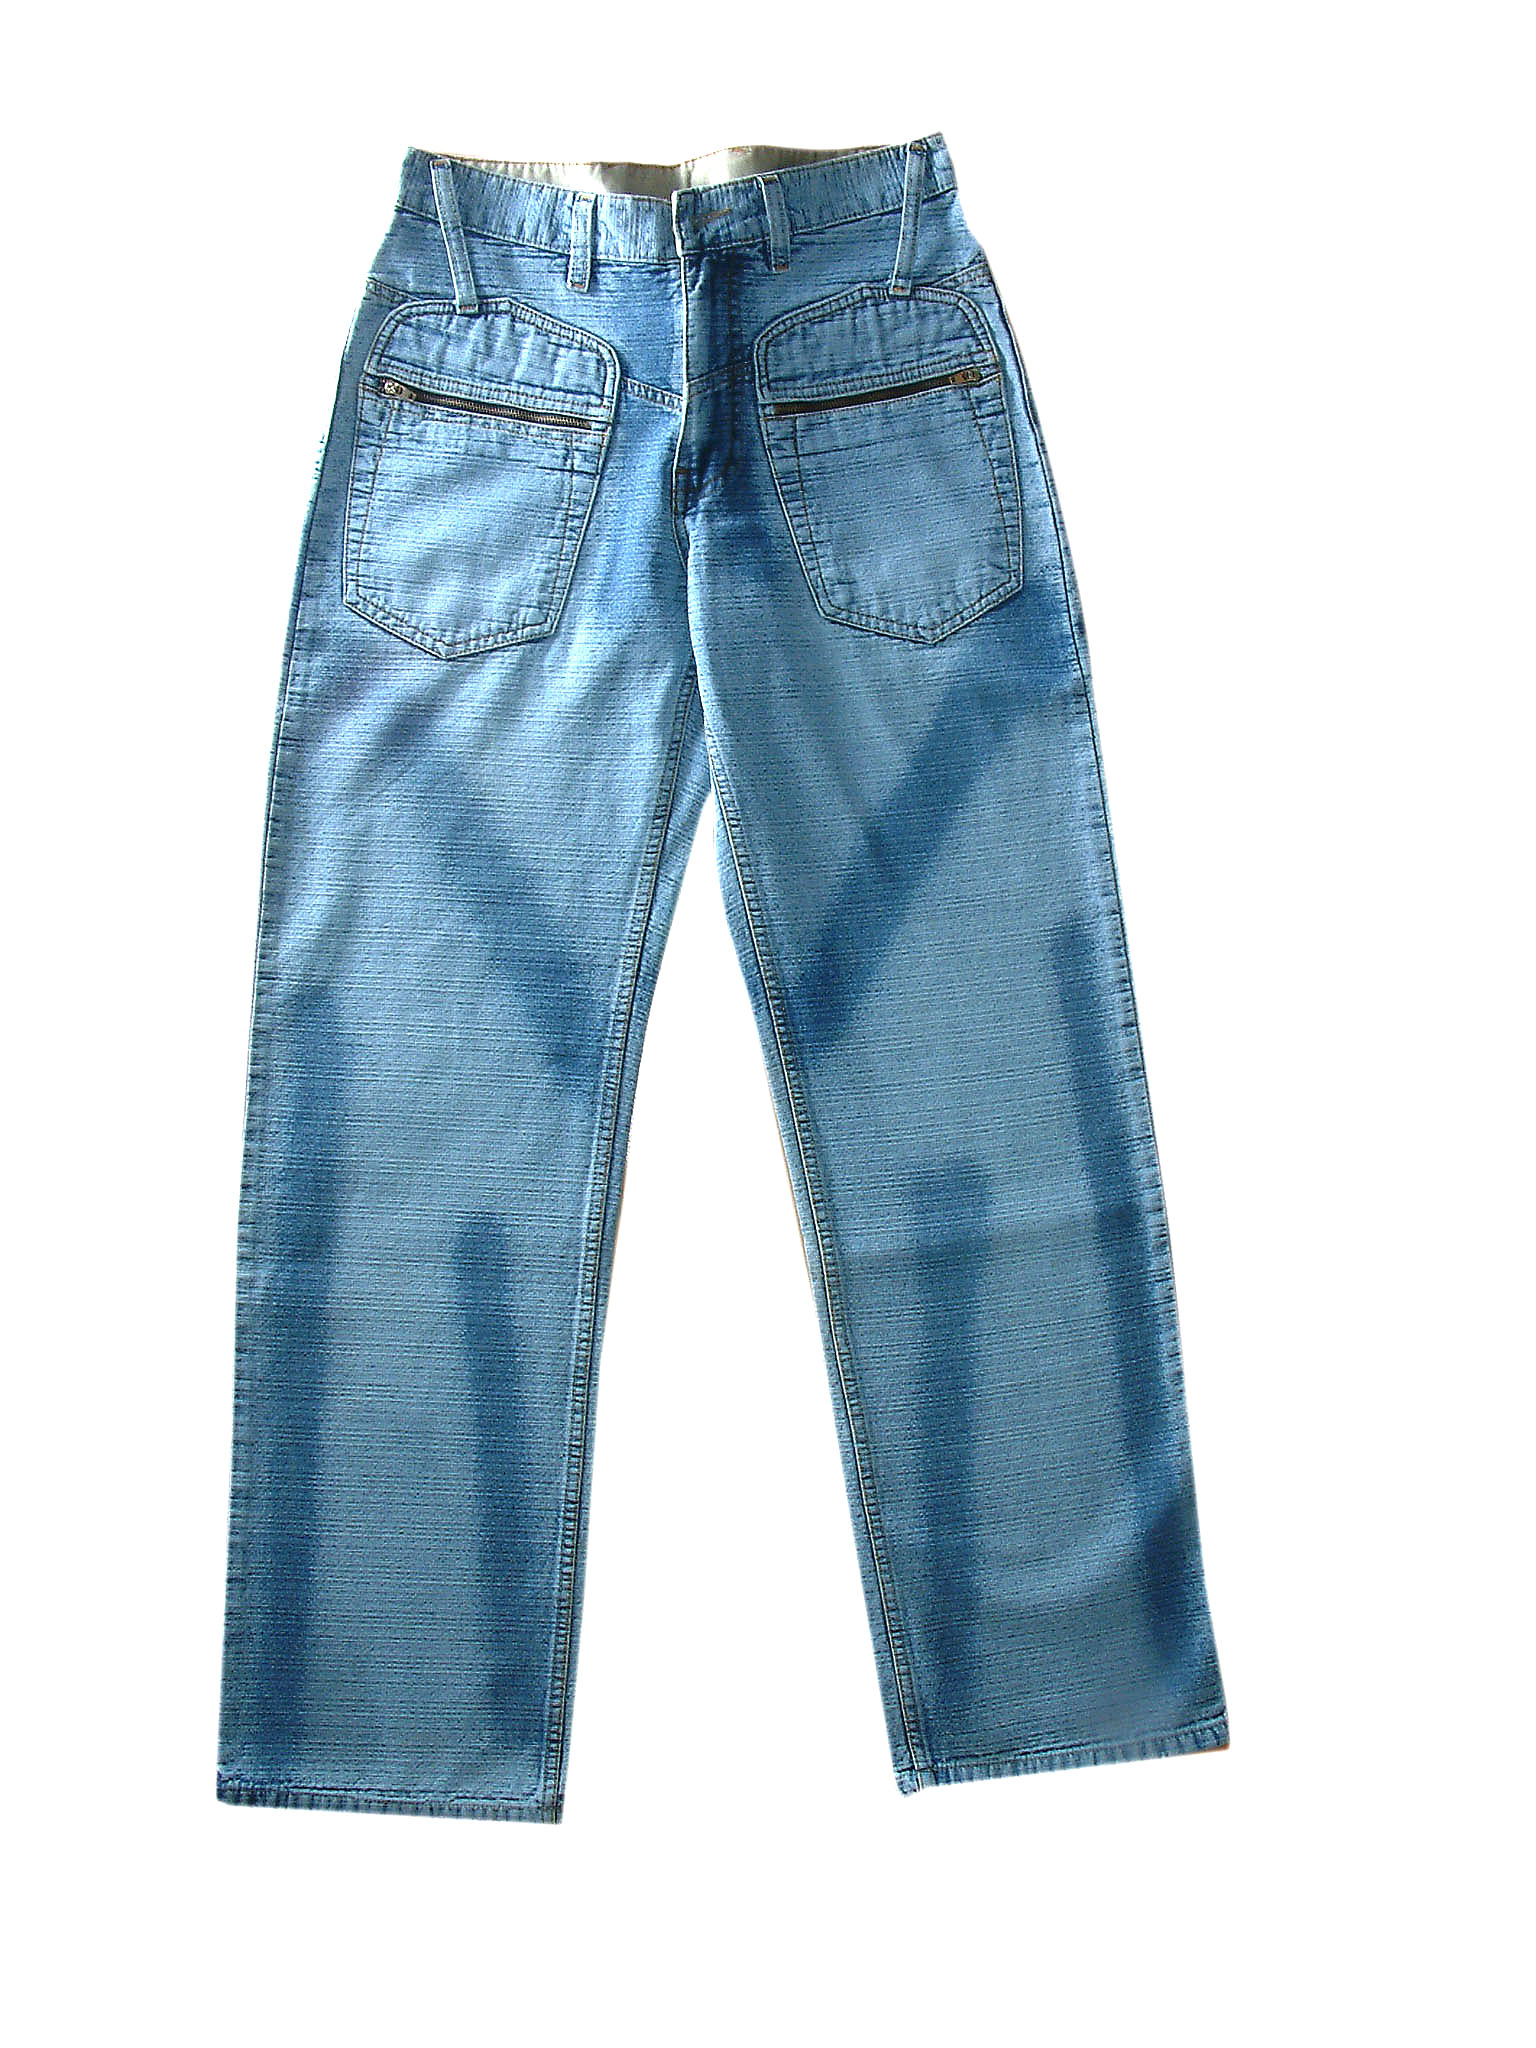 Latest styles of Jeans, Skirts, Tops, Jackets etc.